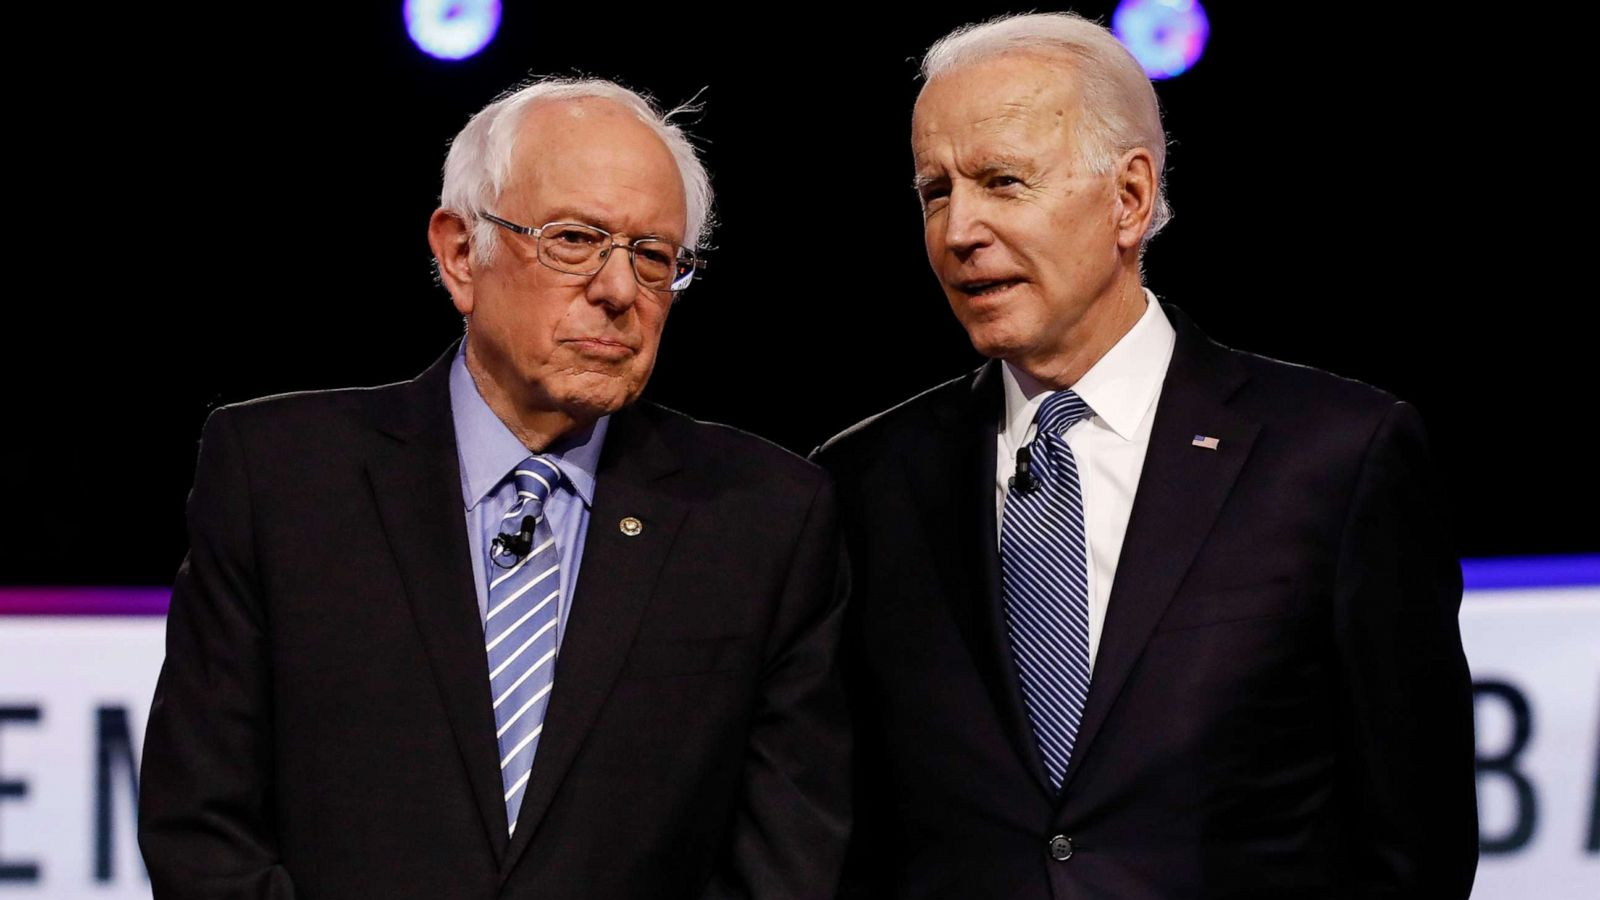 Bernie Sanders endorses Joe Biden, they announce 'working groups ...